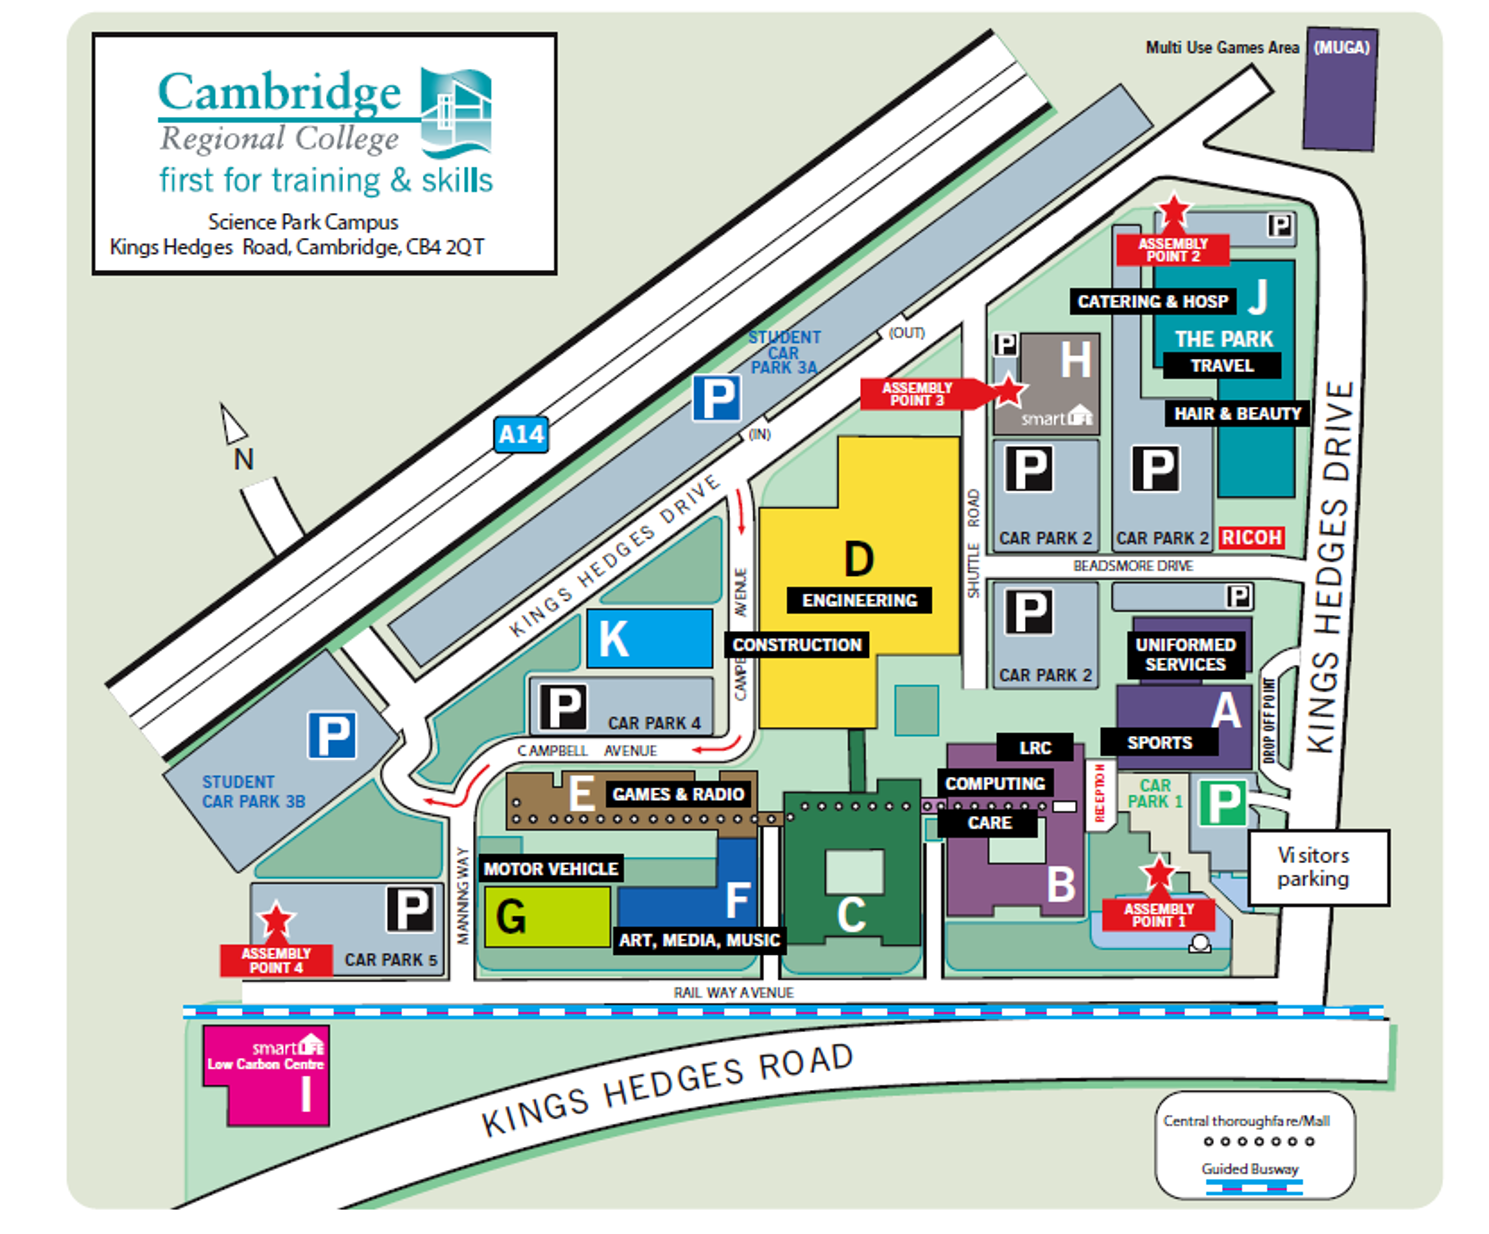 Cambridge regional college site plan